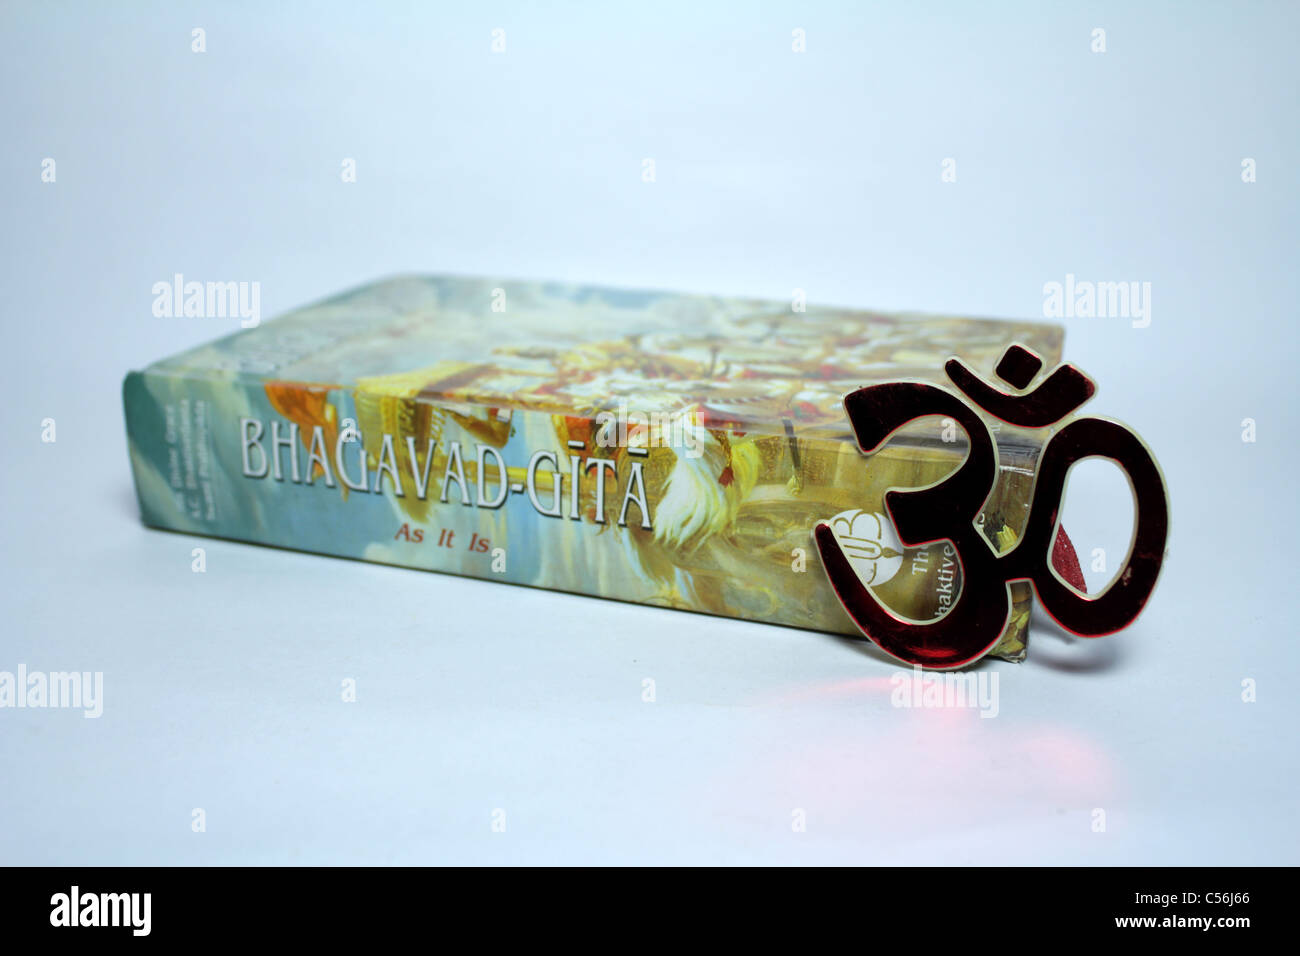 The holy book of Hindus; The Bhagvad Gita and the Hindu symbol OM - Stock Image